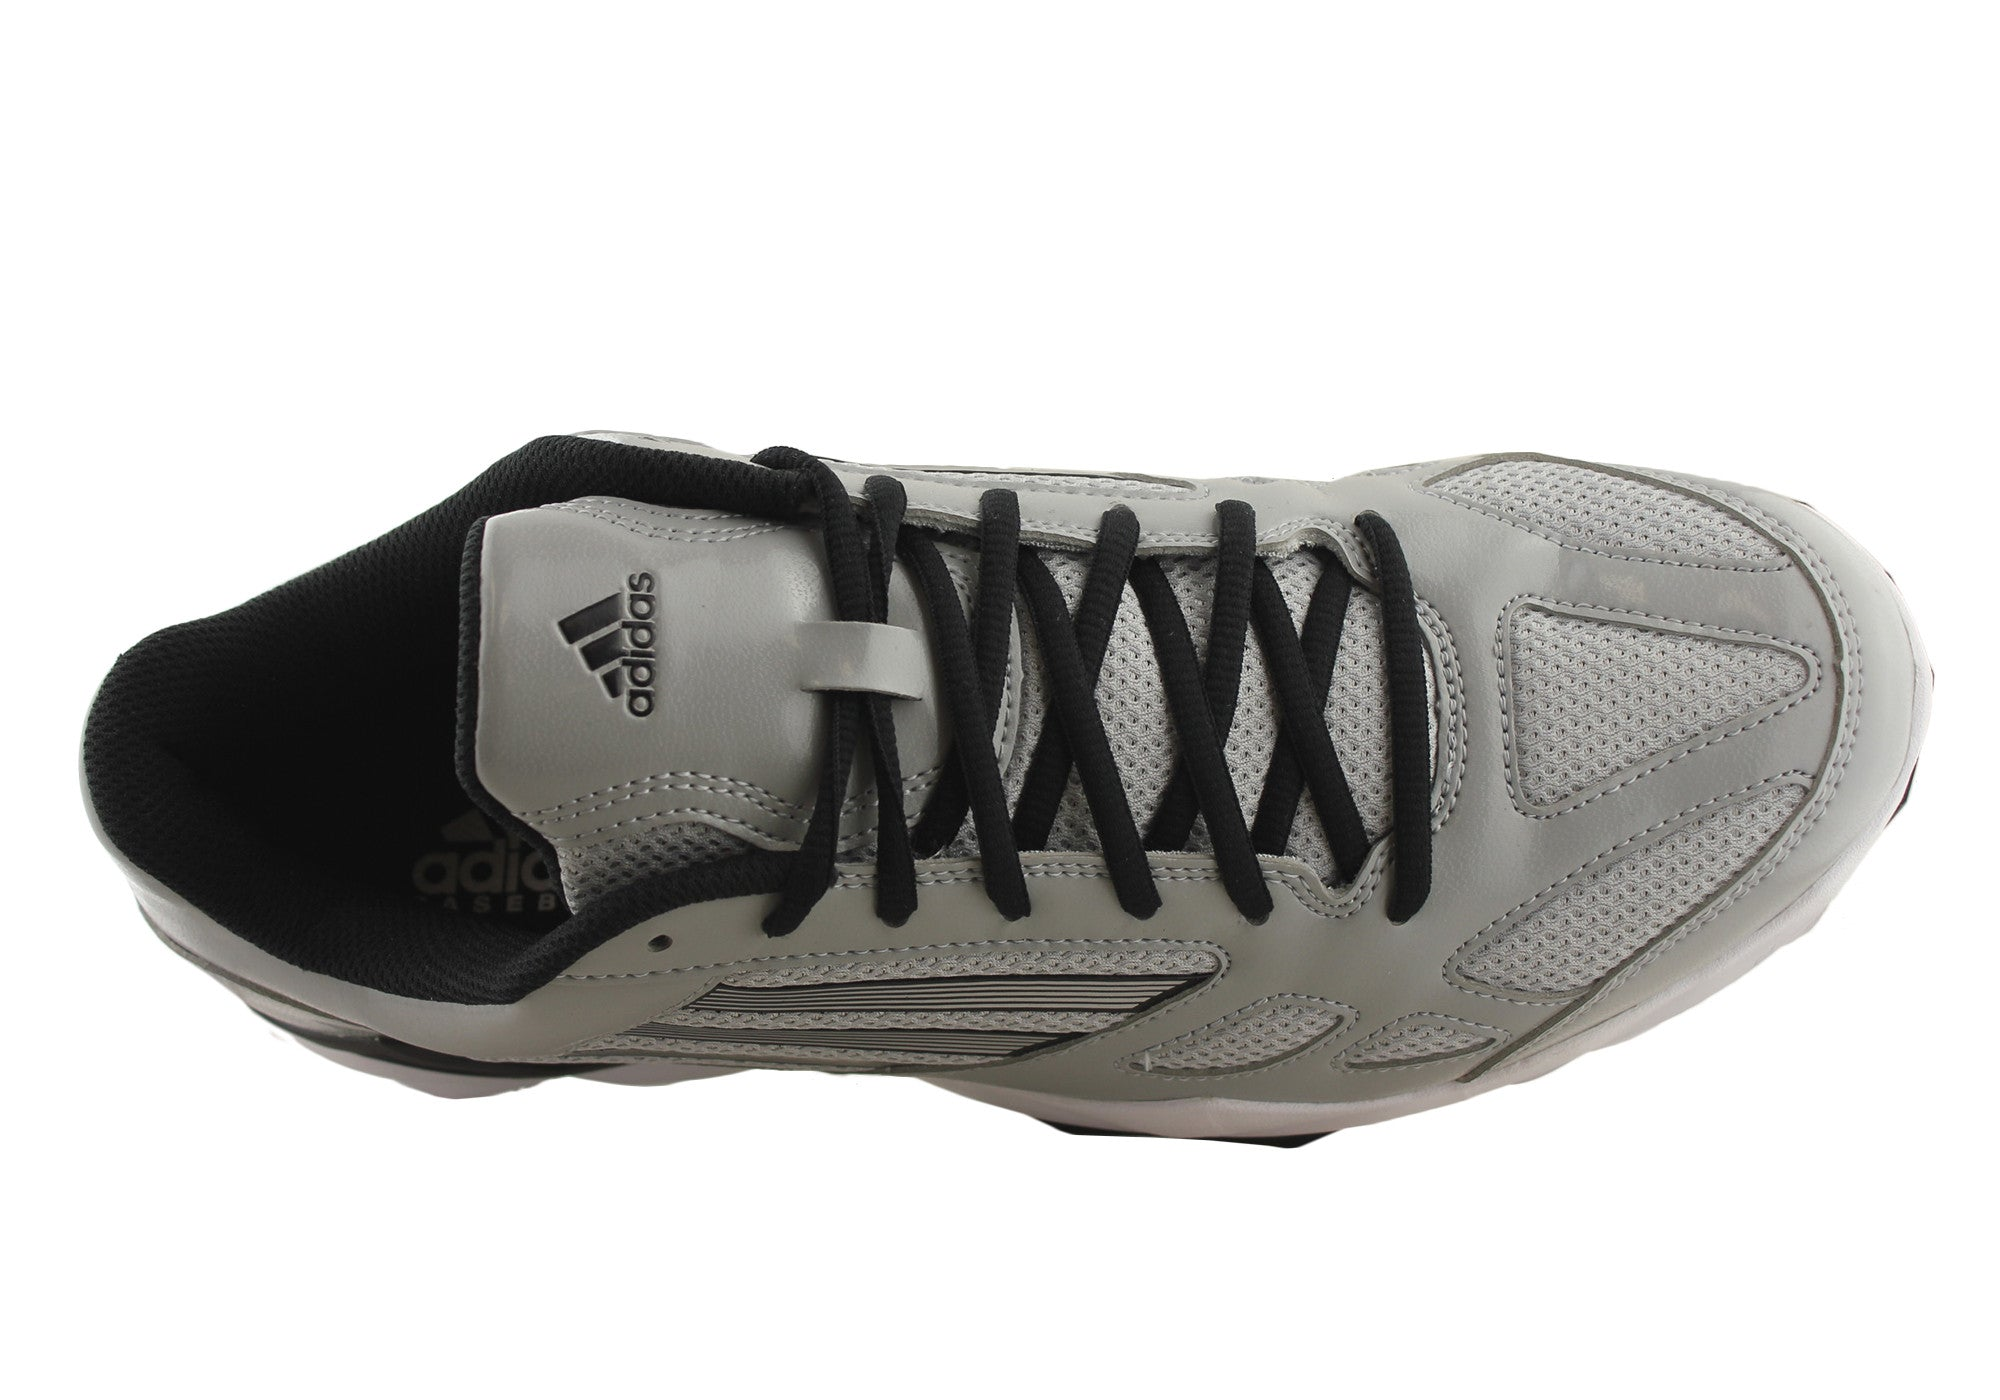 Adidas Pro Trainer 2 Mens Cross Trainers